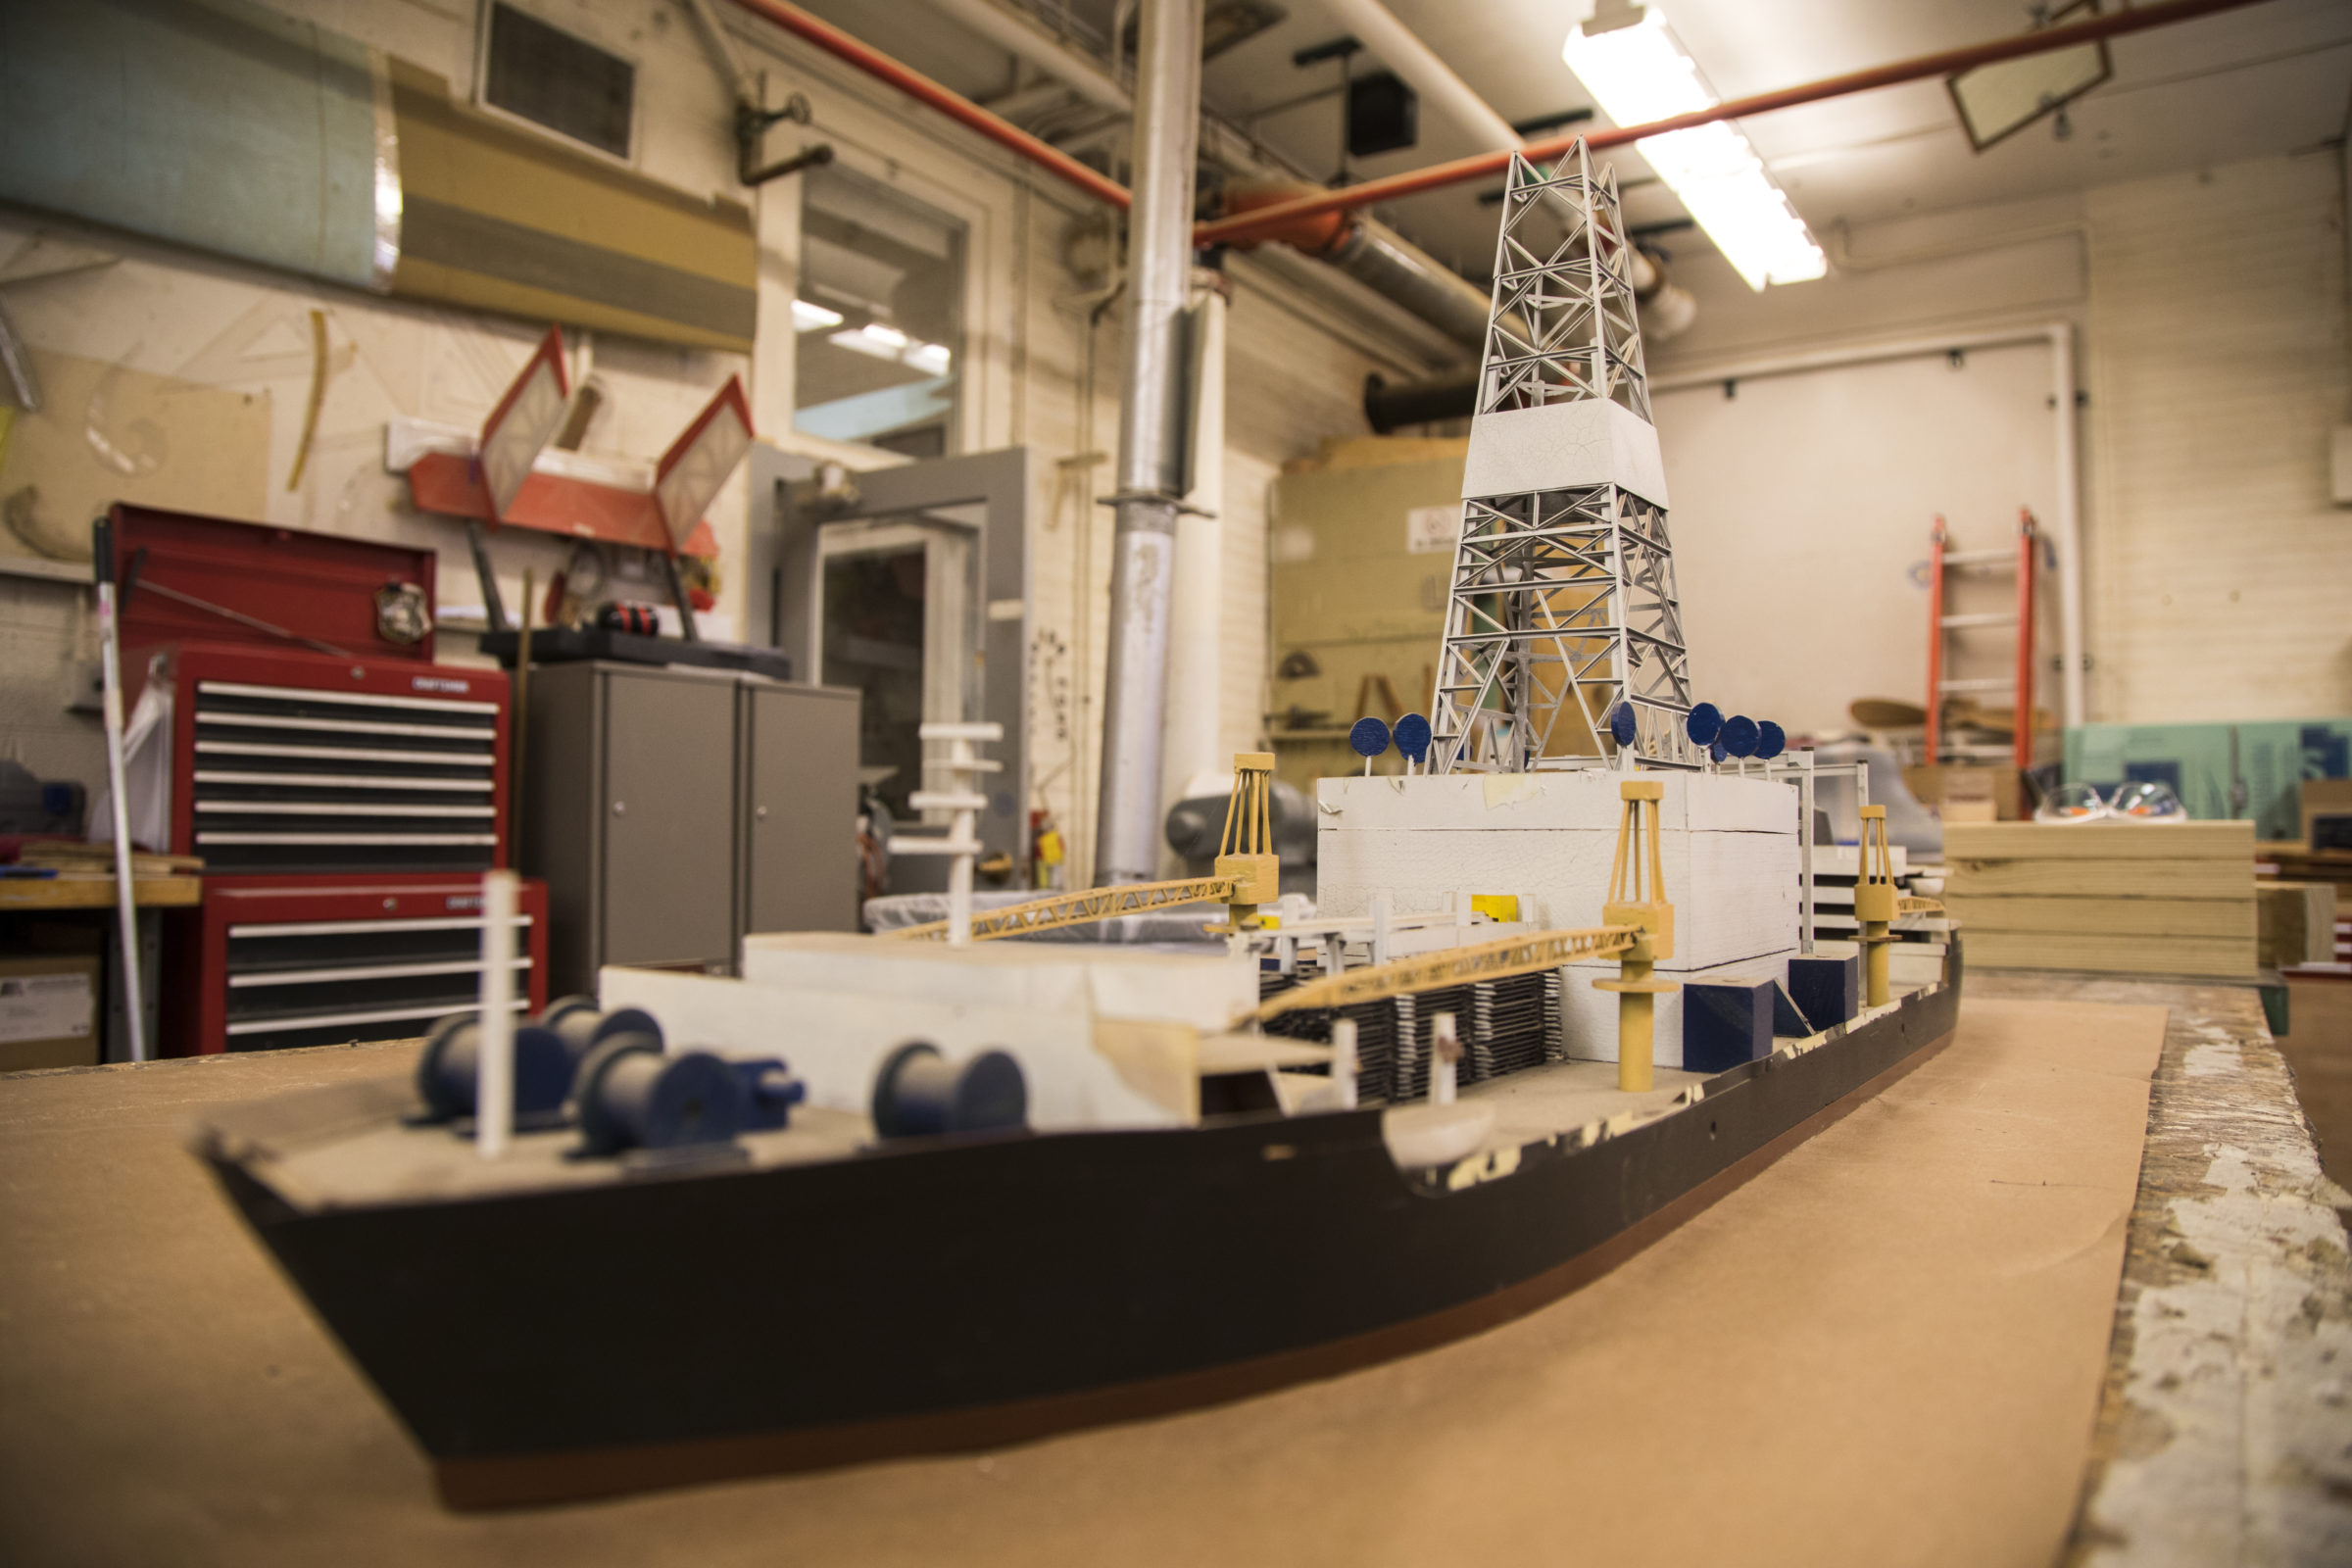 Model of Hughes Glomar Explorer at the Aaron Friedman Marine Hydrodynamics Lab